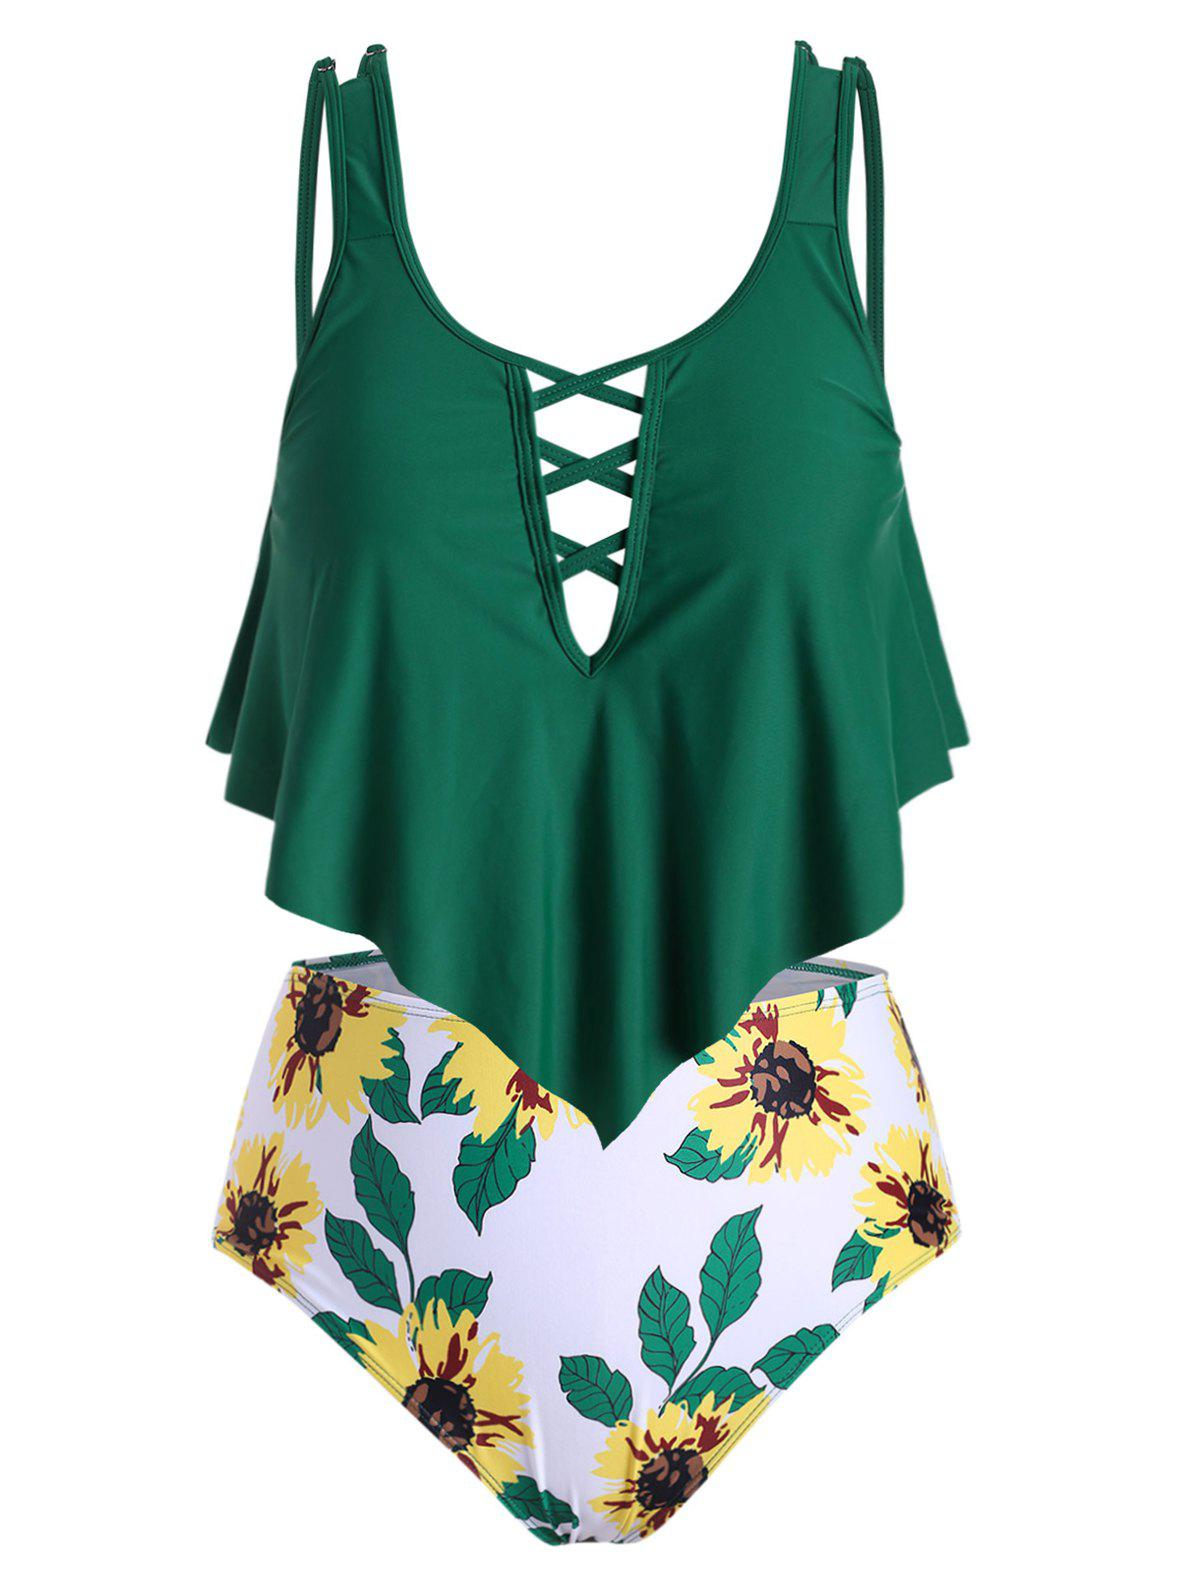 Plus Size Sunflower Print Crisscross Ruffle Tankini Swimsuit Rosegal